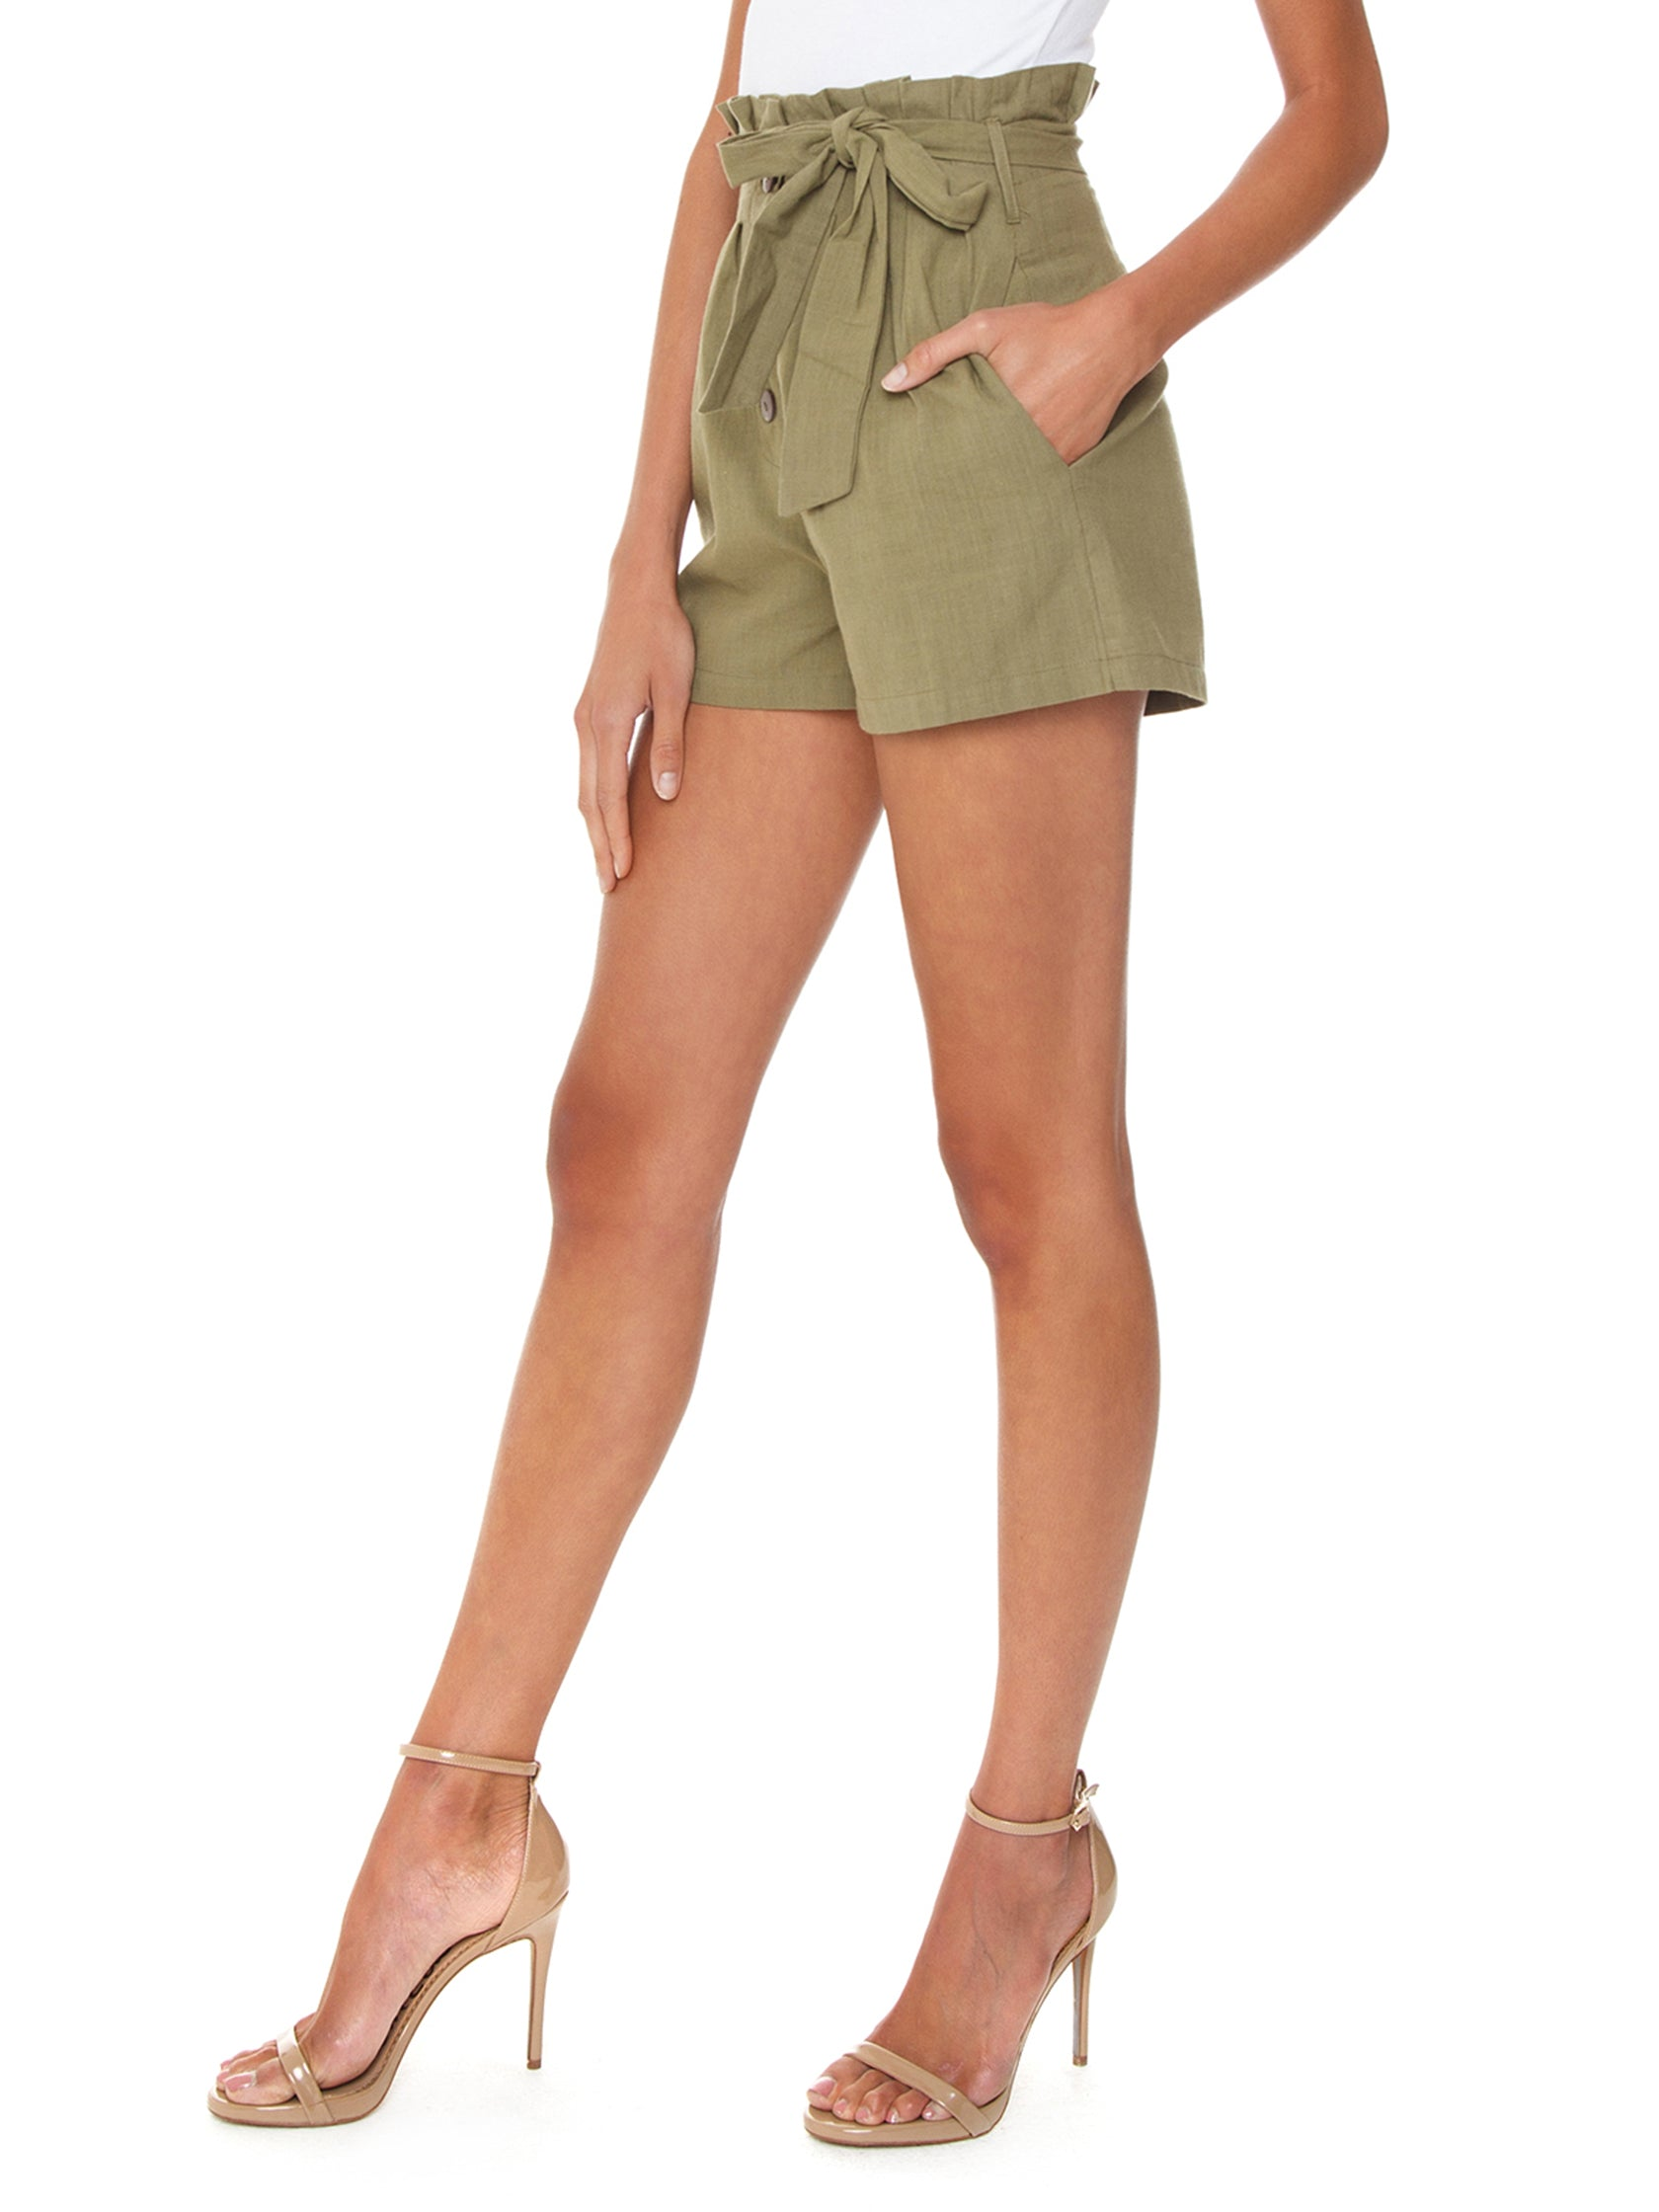 Women wearing a shorts rental from MINKPINK called Linen Paperbag Shorts